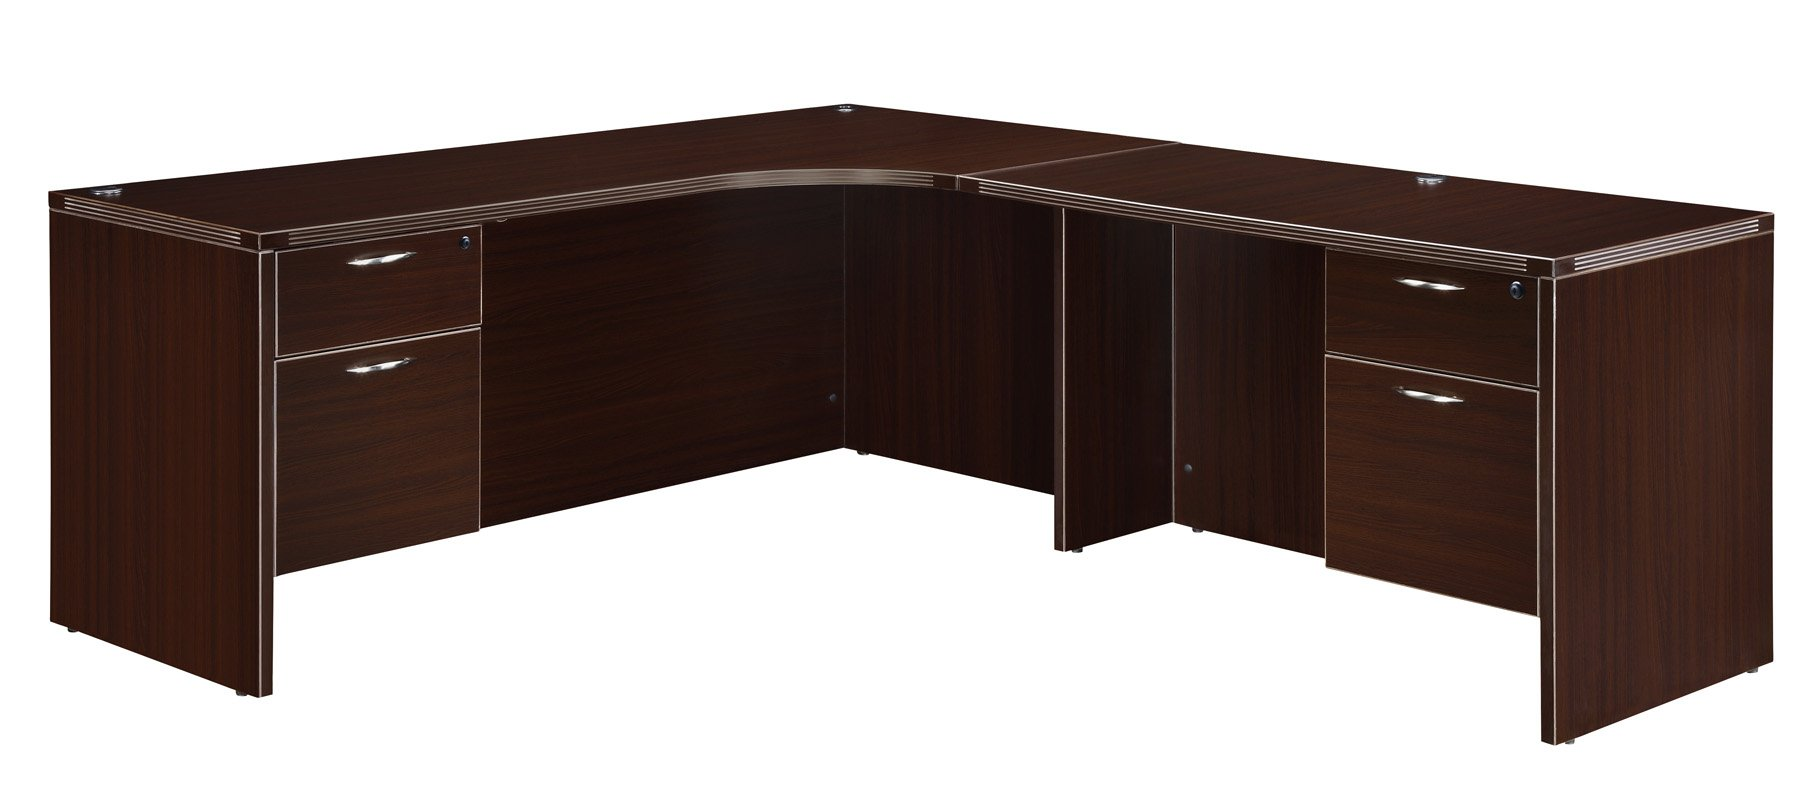 Flexsteel Fairplex  Right Executive Corner L Desk with 3/4 Pedestals